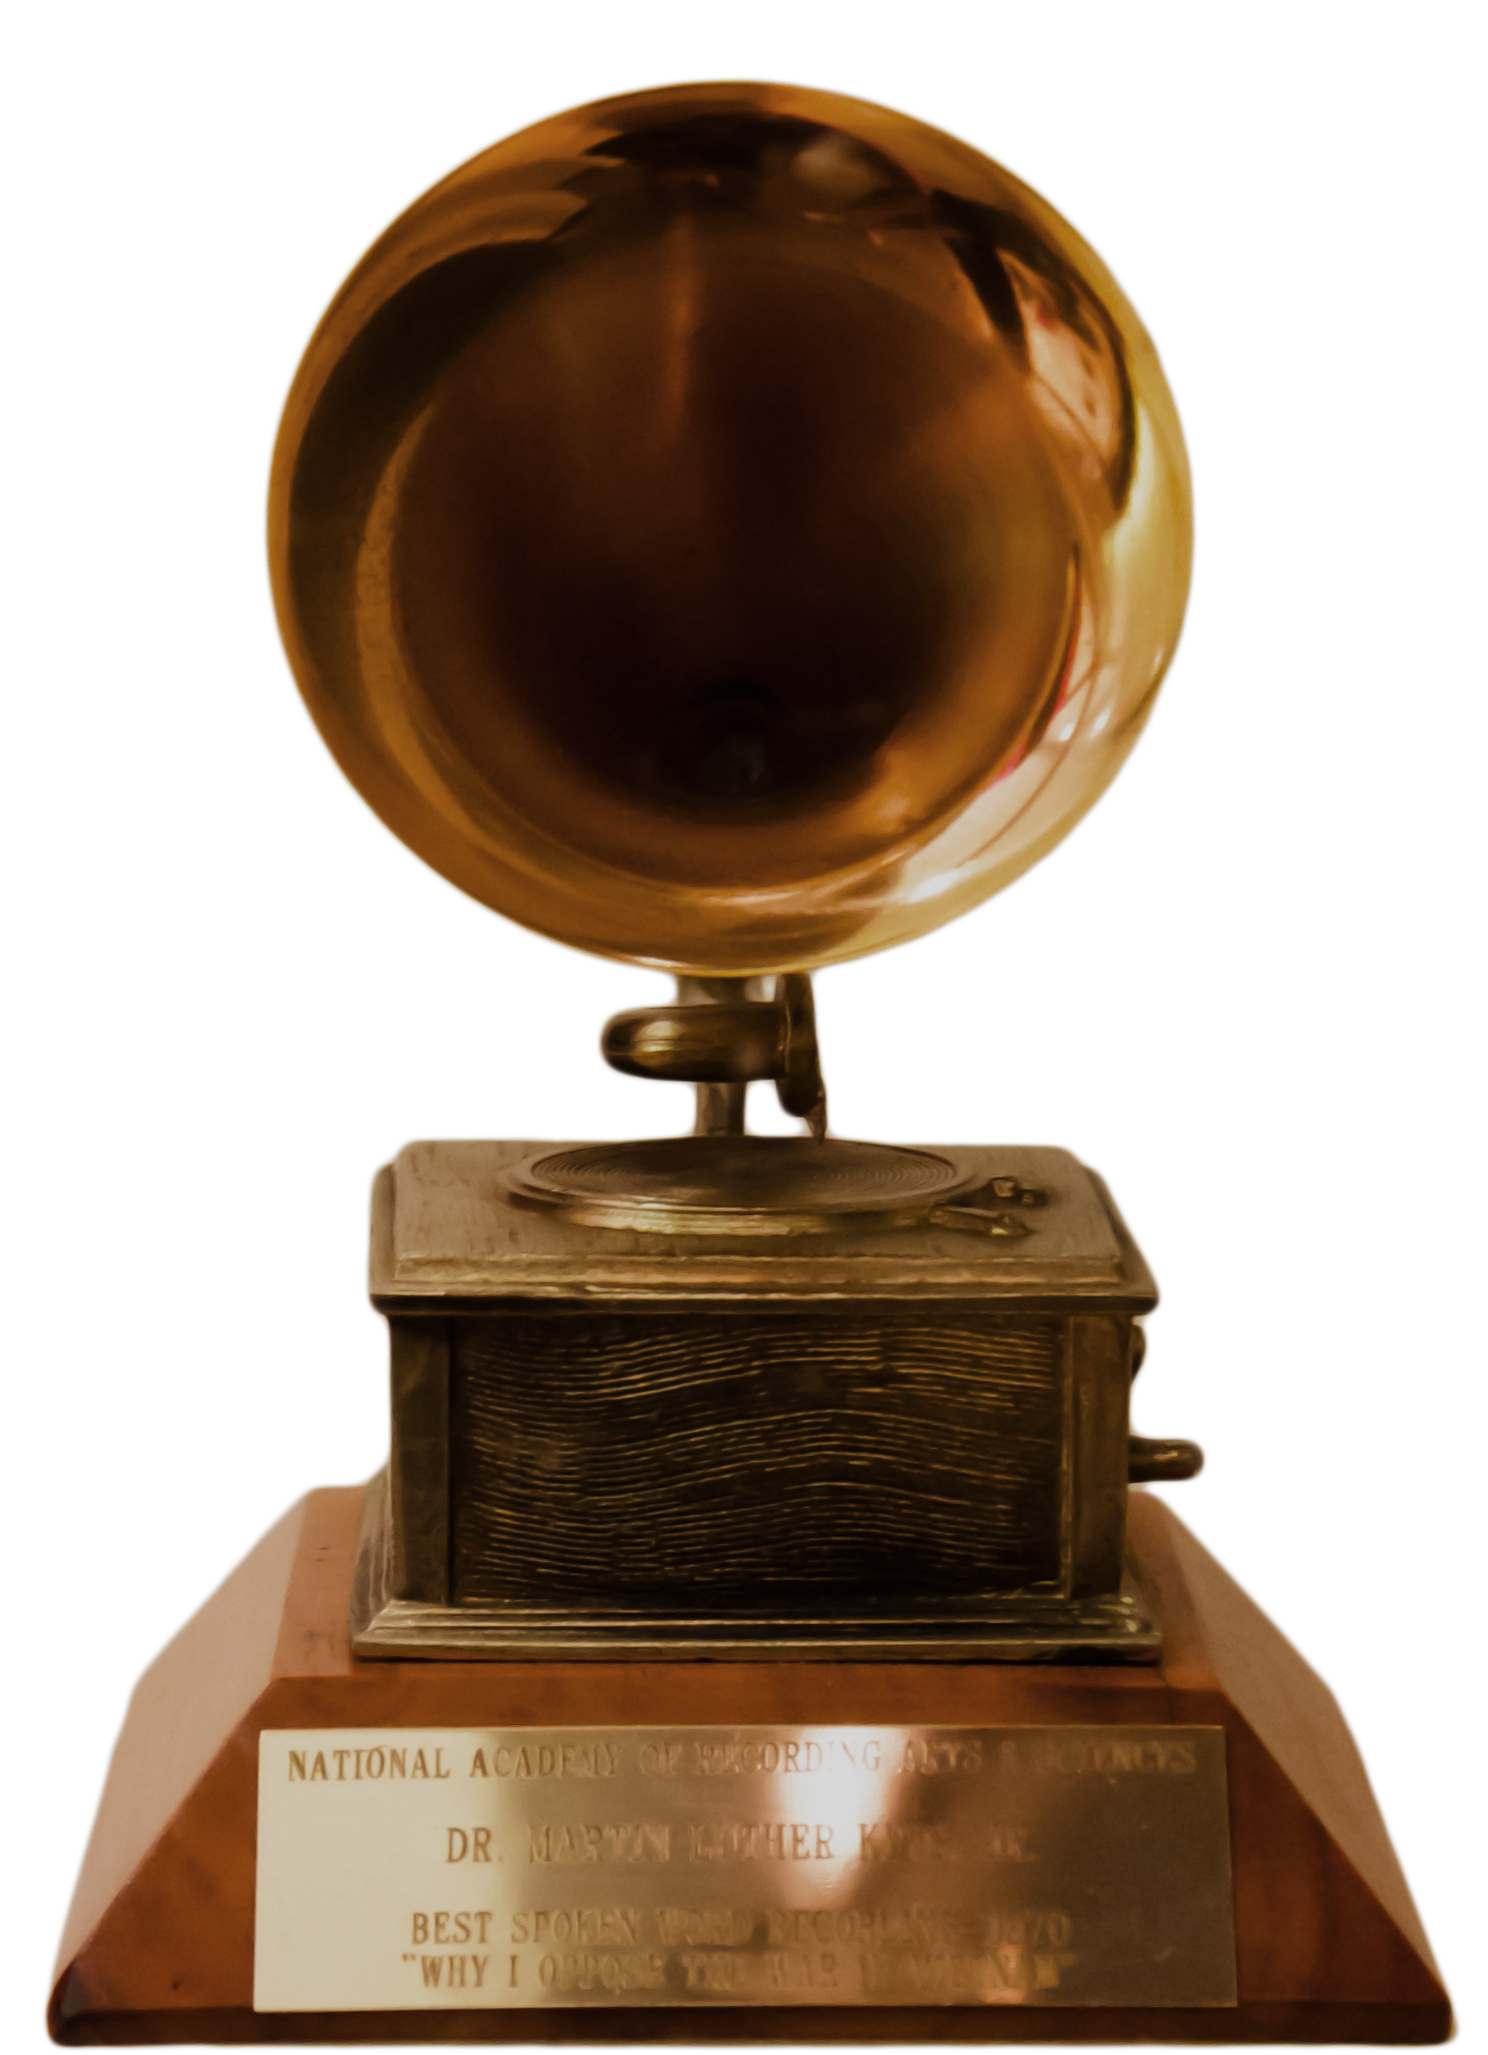 https://i2.wp.com/upload.wikimedia.org/wikipedia/commons/a/af/Grammy_Award_of_Dr._Martin_Luther_King,_Jr..jpg